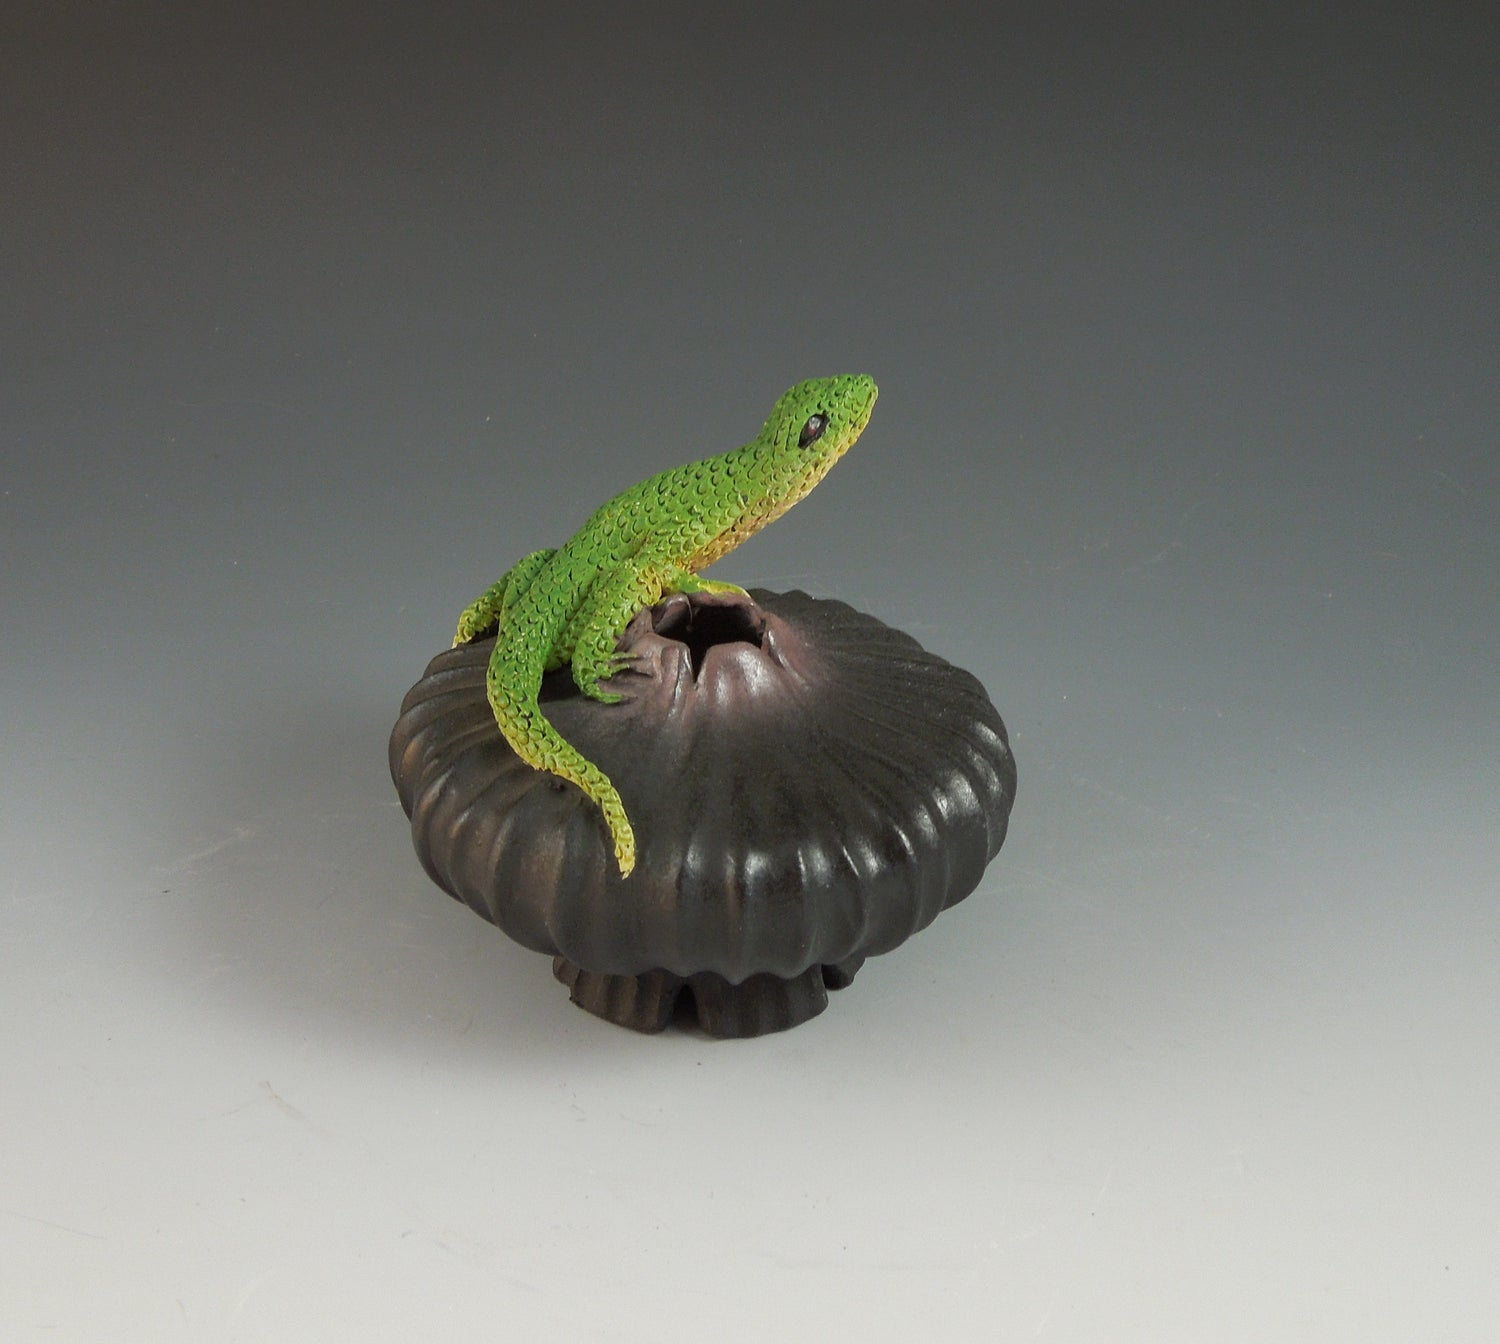 Image of Lizard on Fluted Bowl